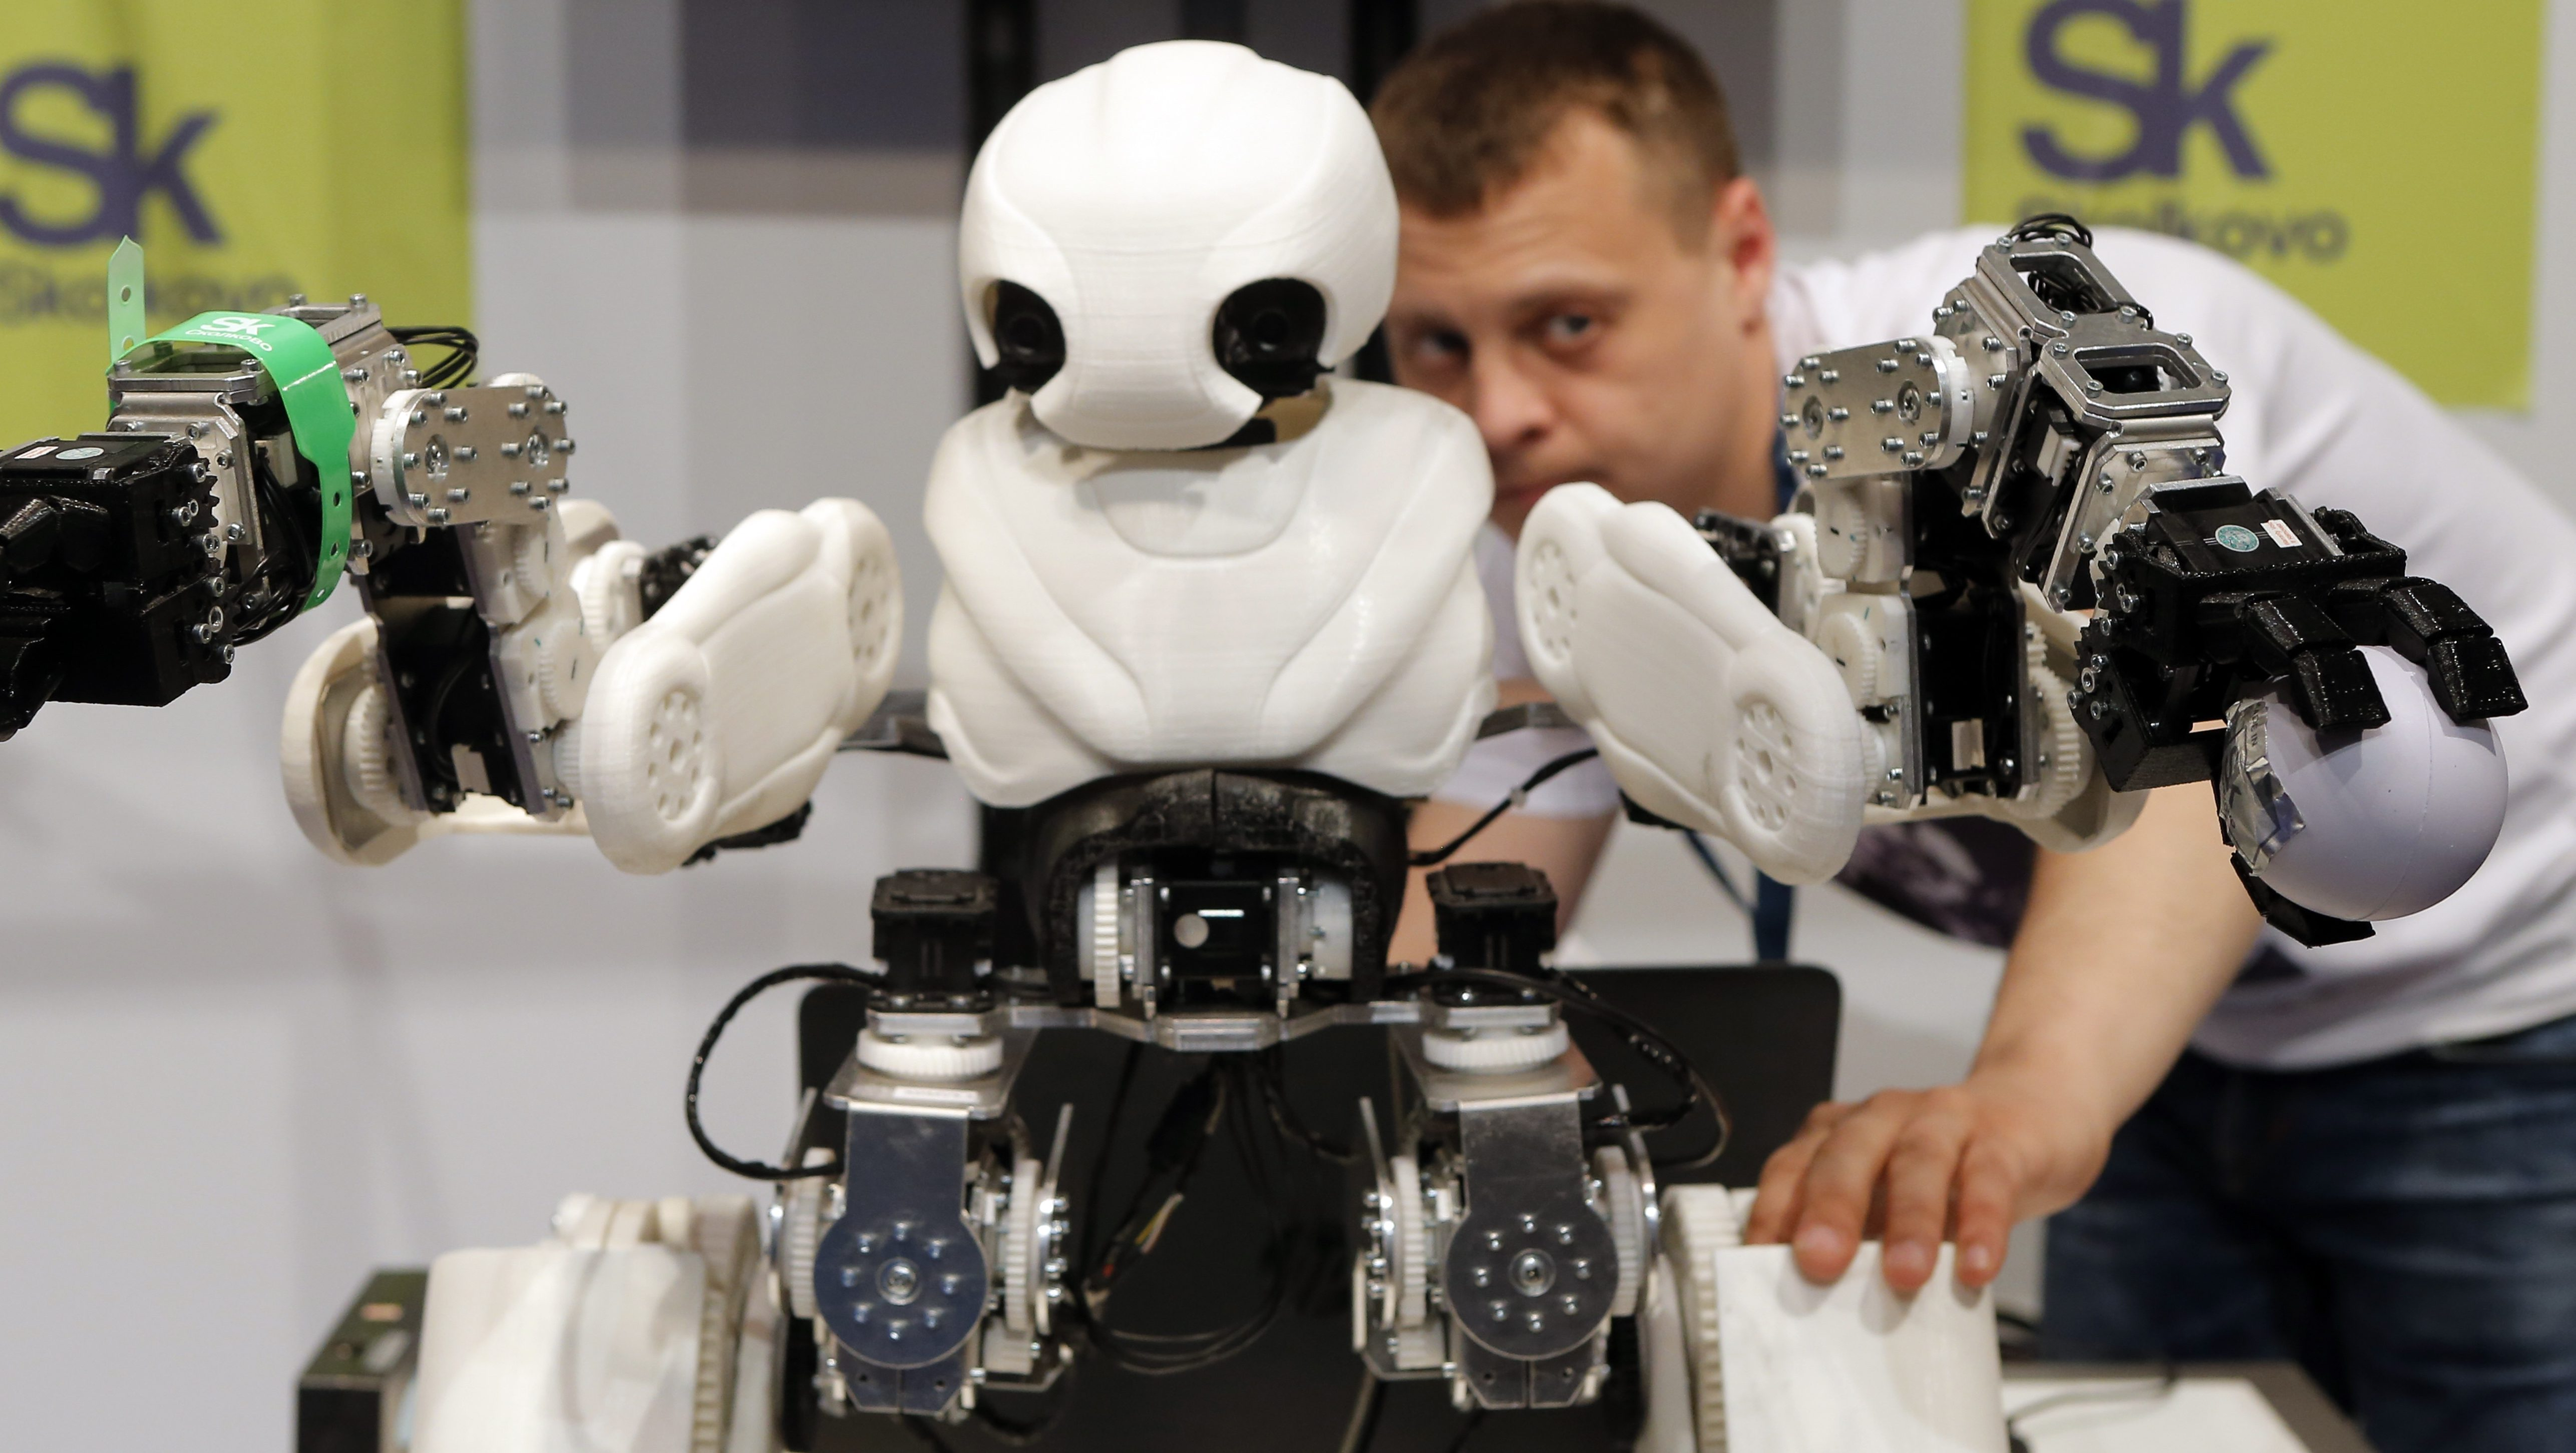 Robot exhibitor Alexander Ganyushkin from Russia presents a prototype robot named Adam during the Innorobo European summit, an event dedicated to the service robotics industry in Aubervilliers, outskirts of Paris, Wednesday, May 25, 2016. (AP Photo/Francois Mori)